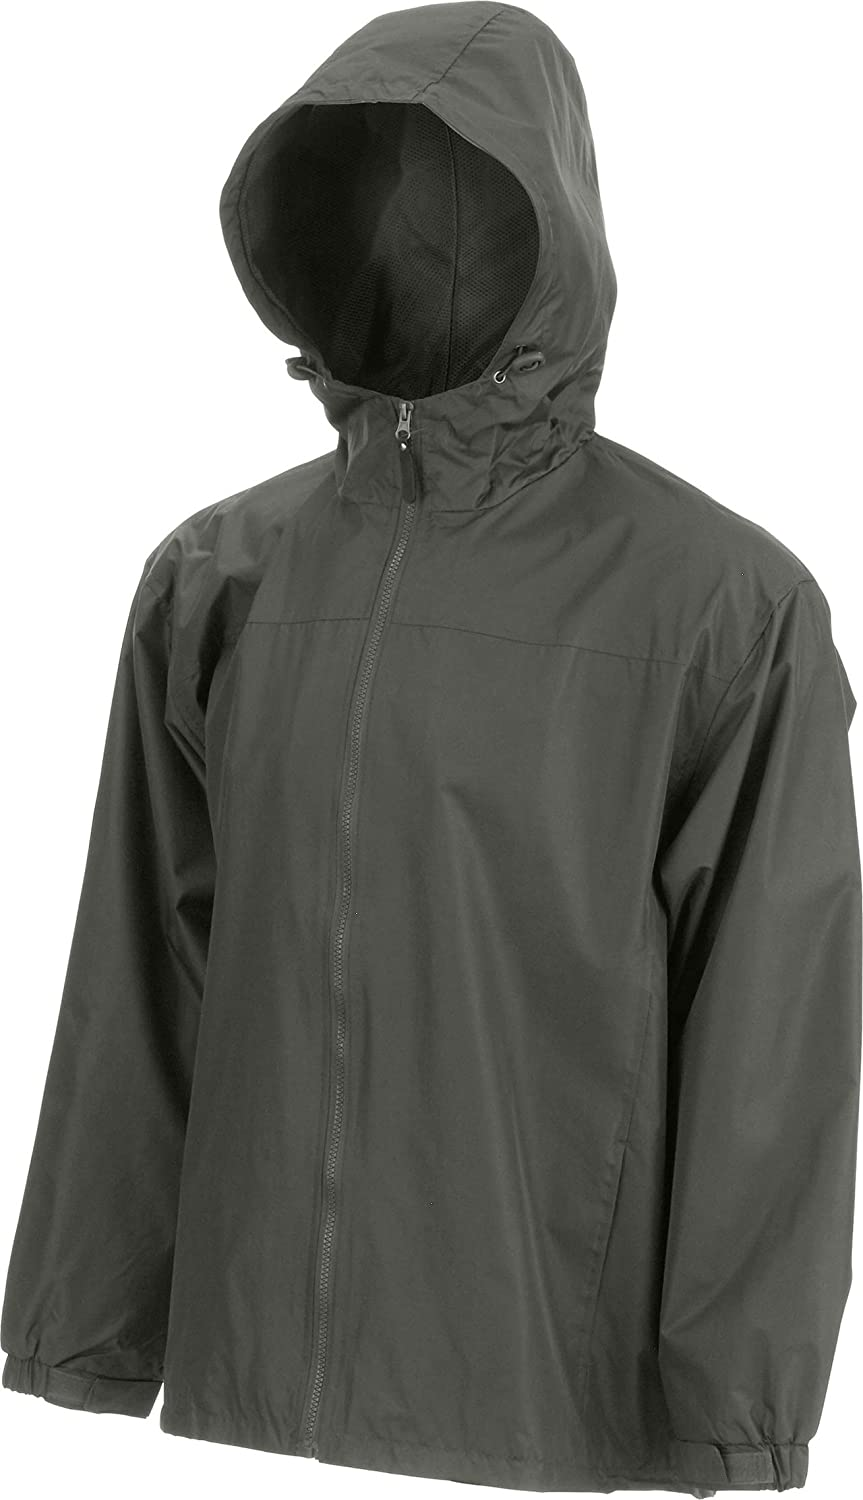 eb79 Mens Lined Hooded Wind Resistant//Water Repellent Windbreaker Jacket Khaki 3XL